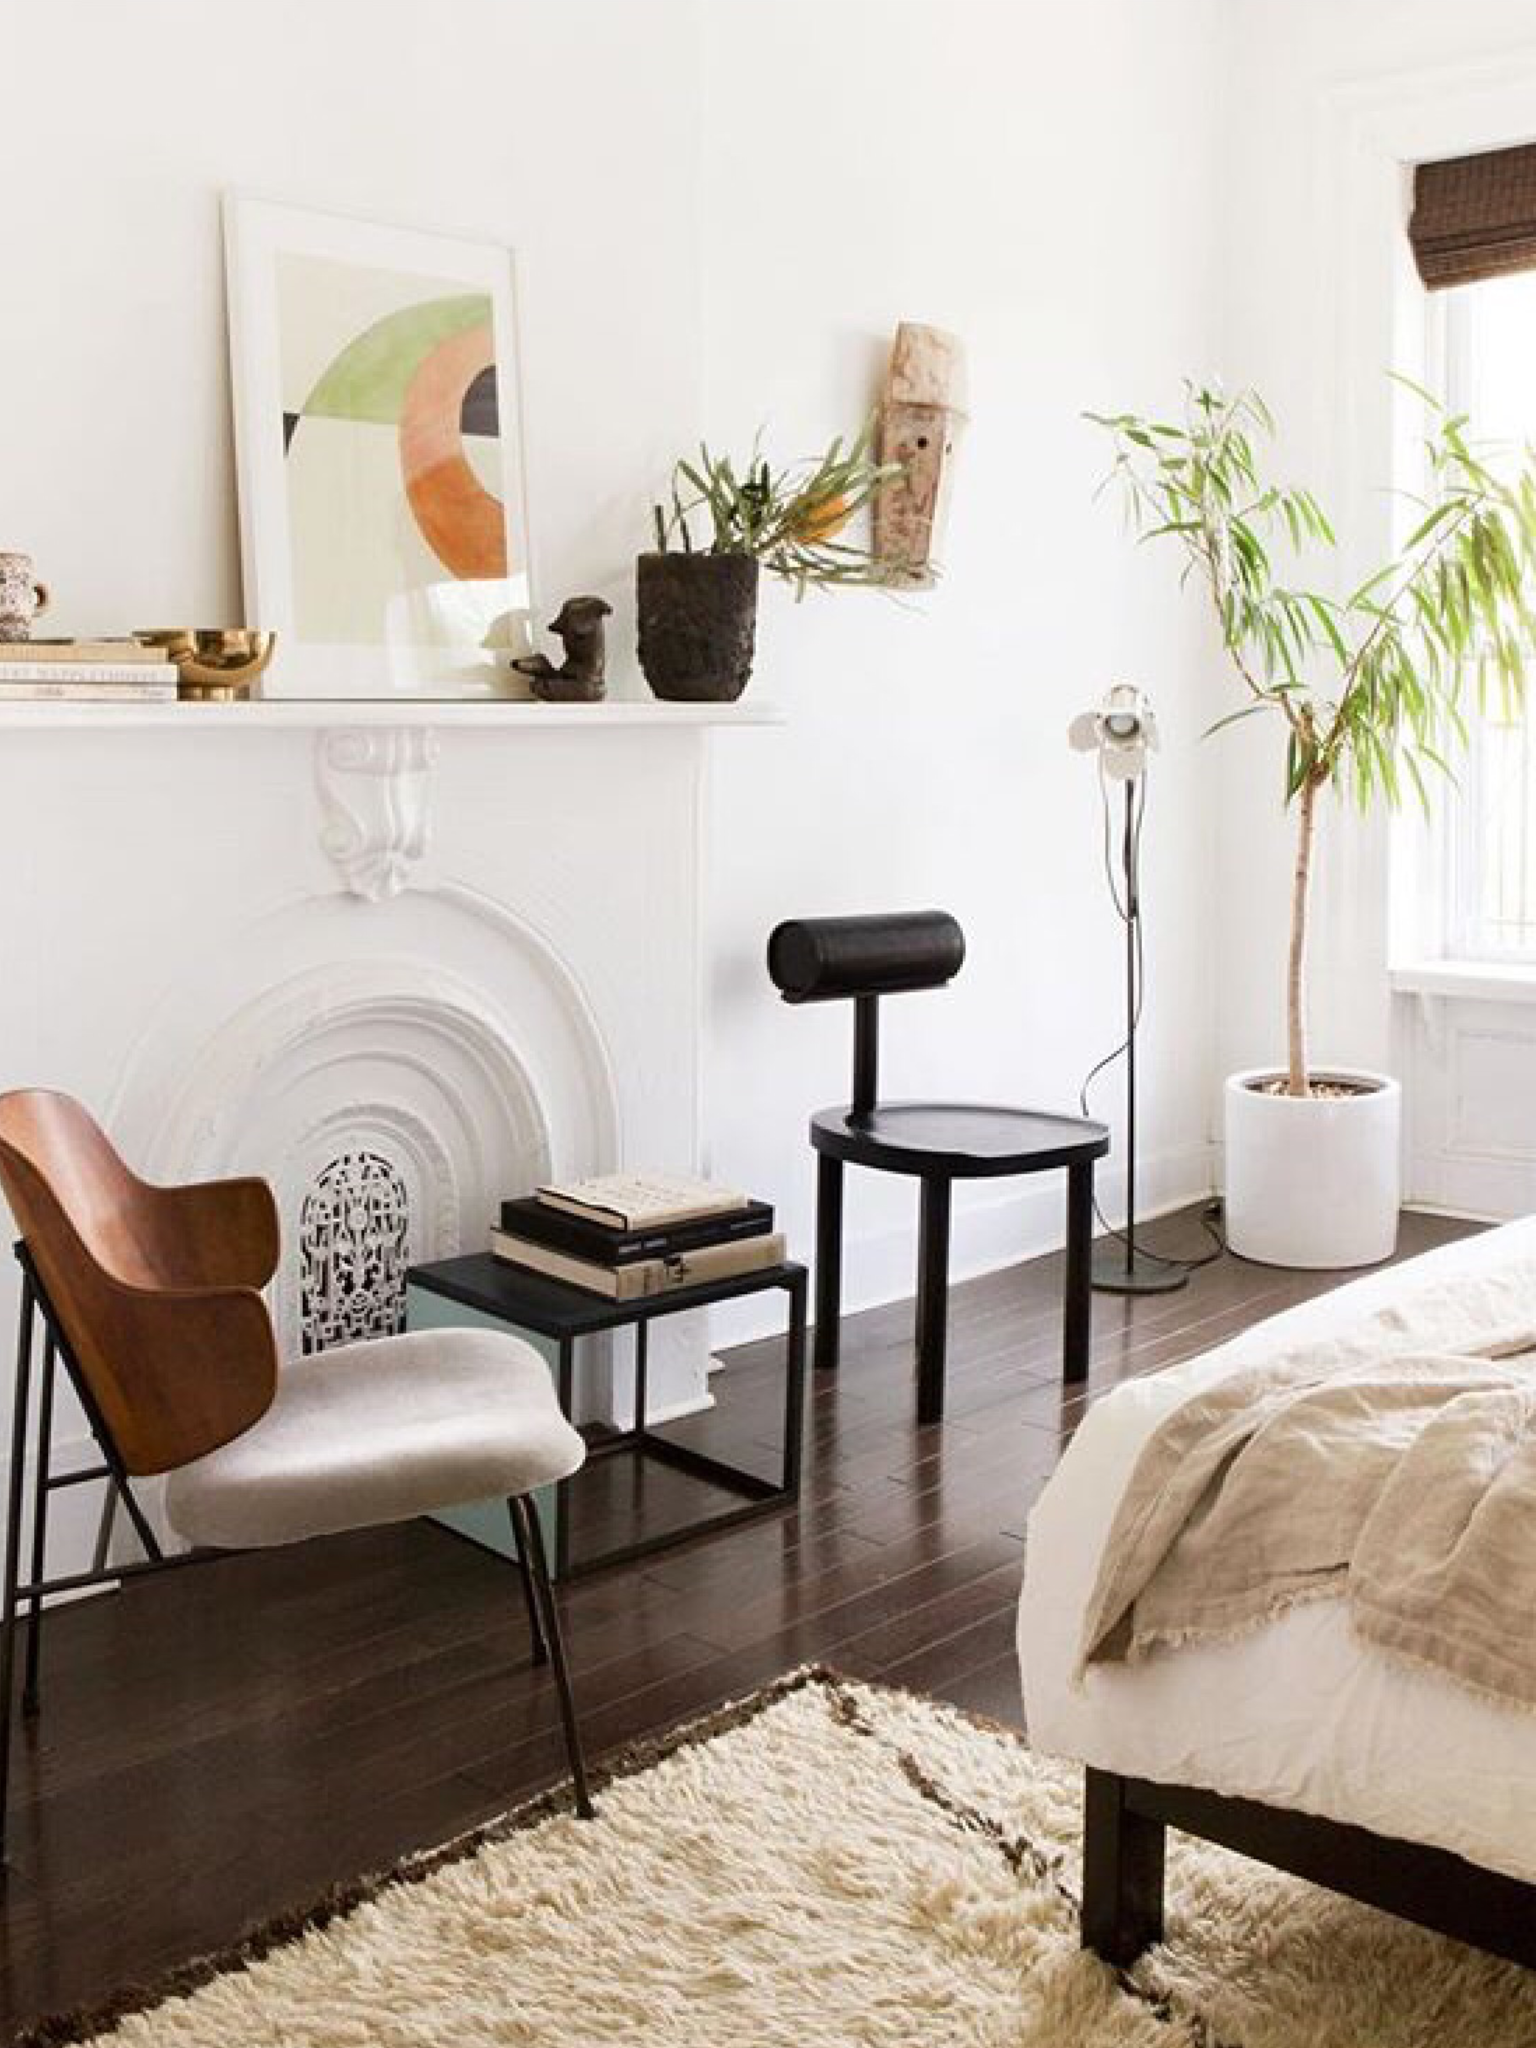 Brooklyn apartment image by Azula on Home